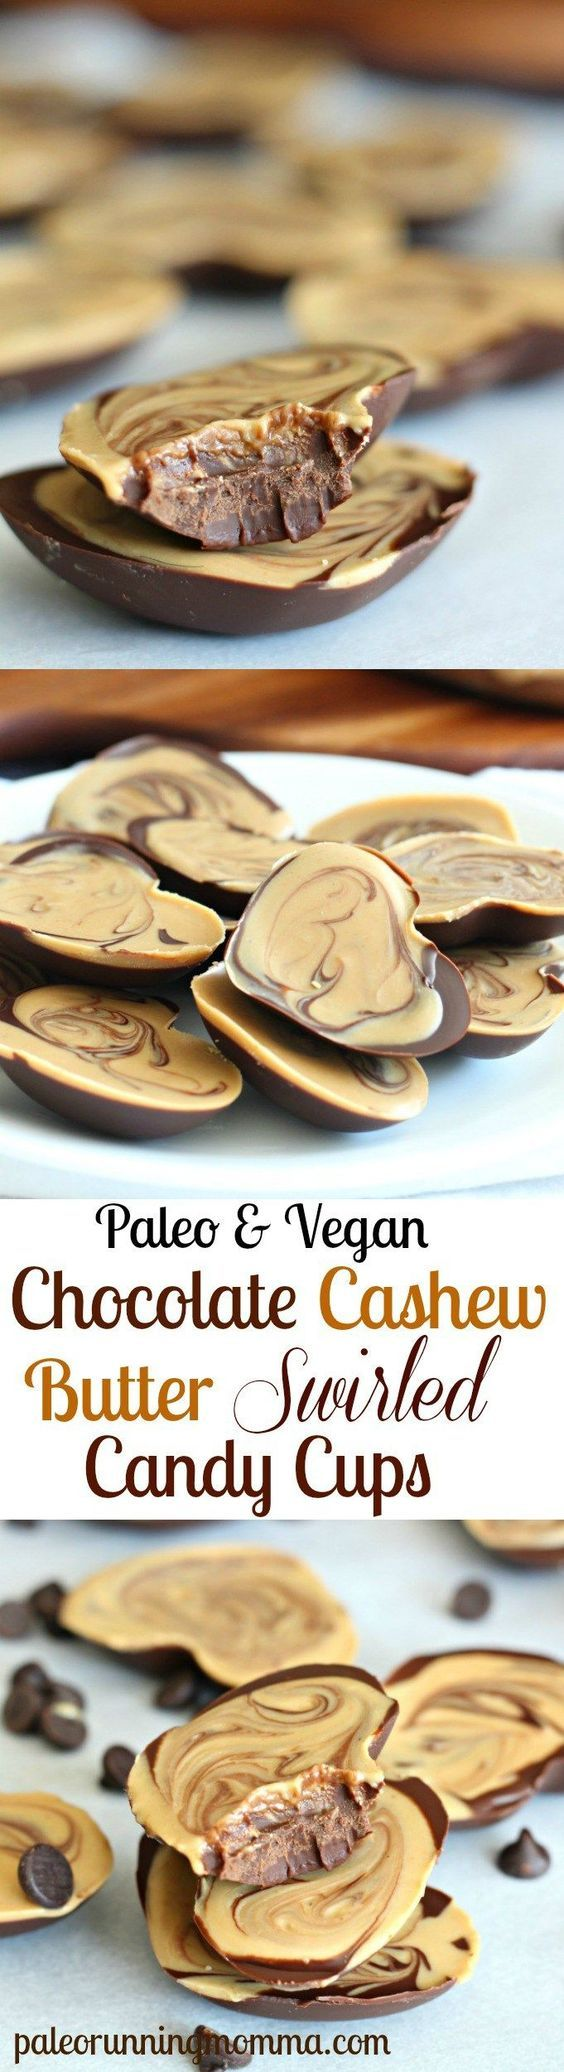 Paleo & Vegan Chocolate Cashew Butter Swirled Candy Cups ~so rich and creamy, not to mention dairy-free, grain-free, gluten-free, vegan, paleo, & clean eating!